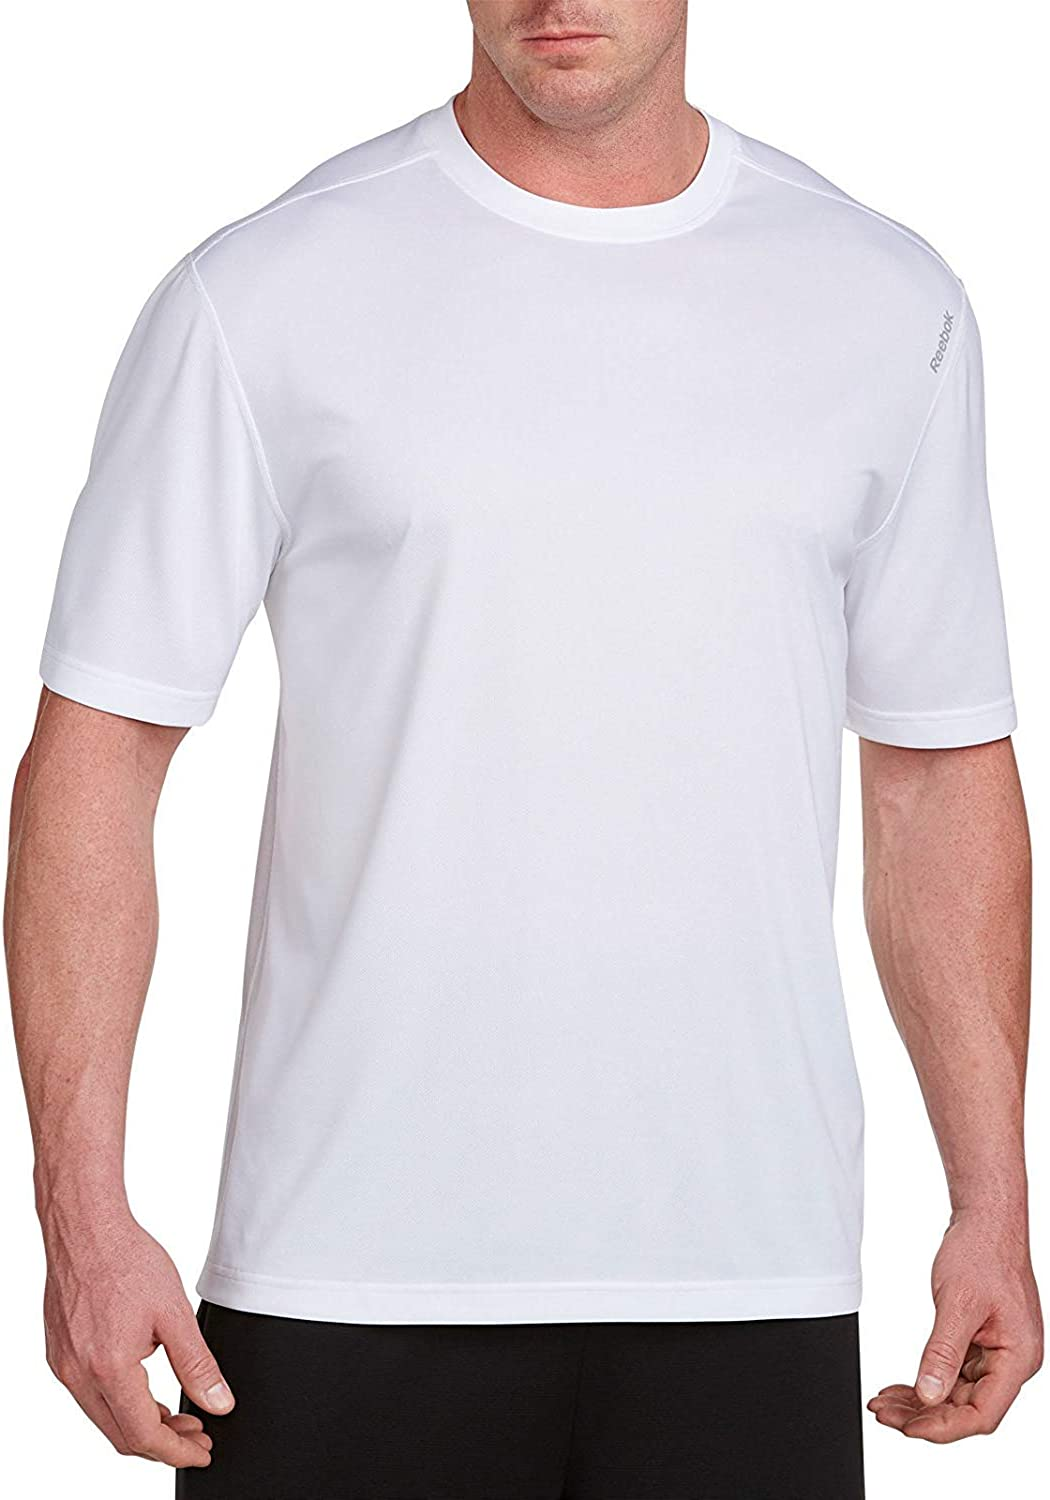 Reebok 4 years warranty Big Selling and selling and Tall Dry Tech T-Shirt Play